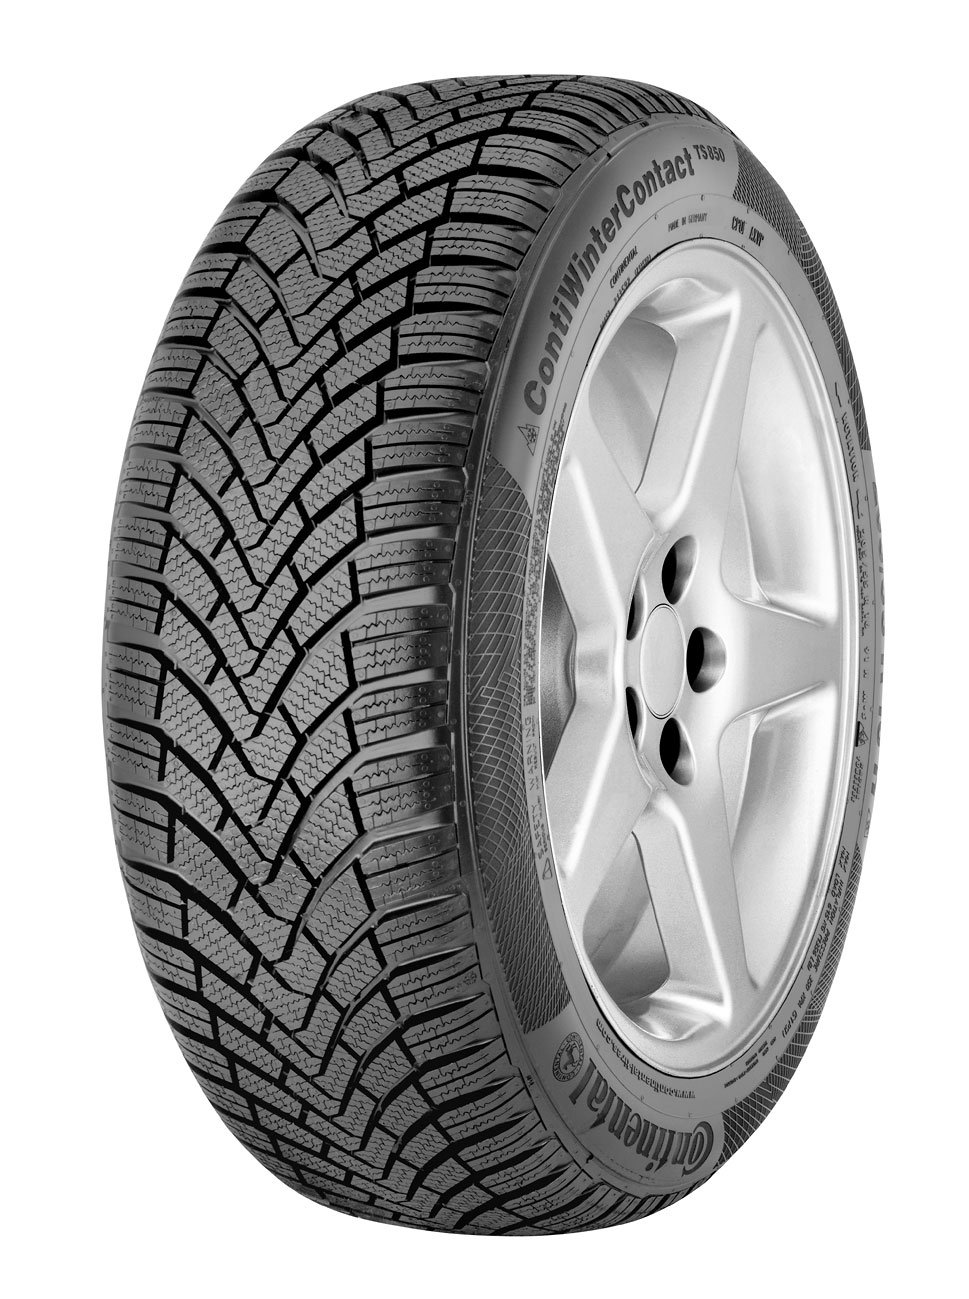 Neumático CONTINENTAL WINTER CONTACT TS850 215/55R16 97 H